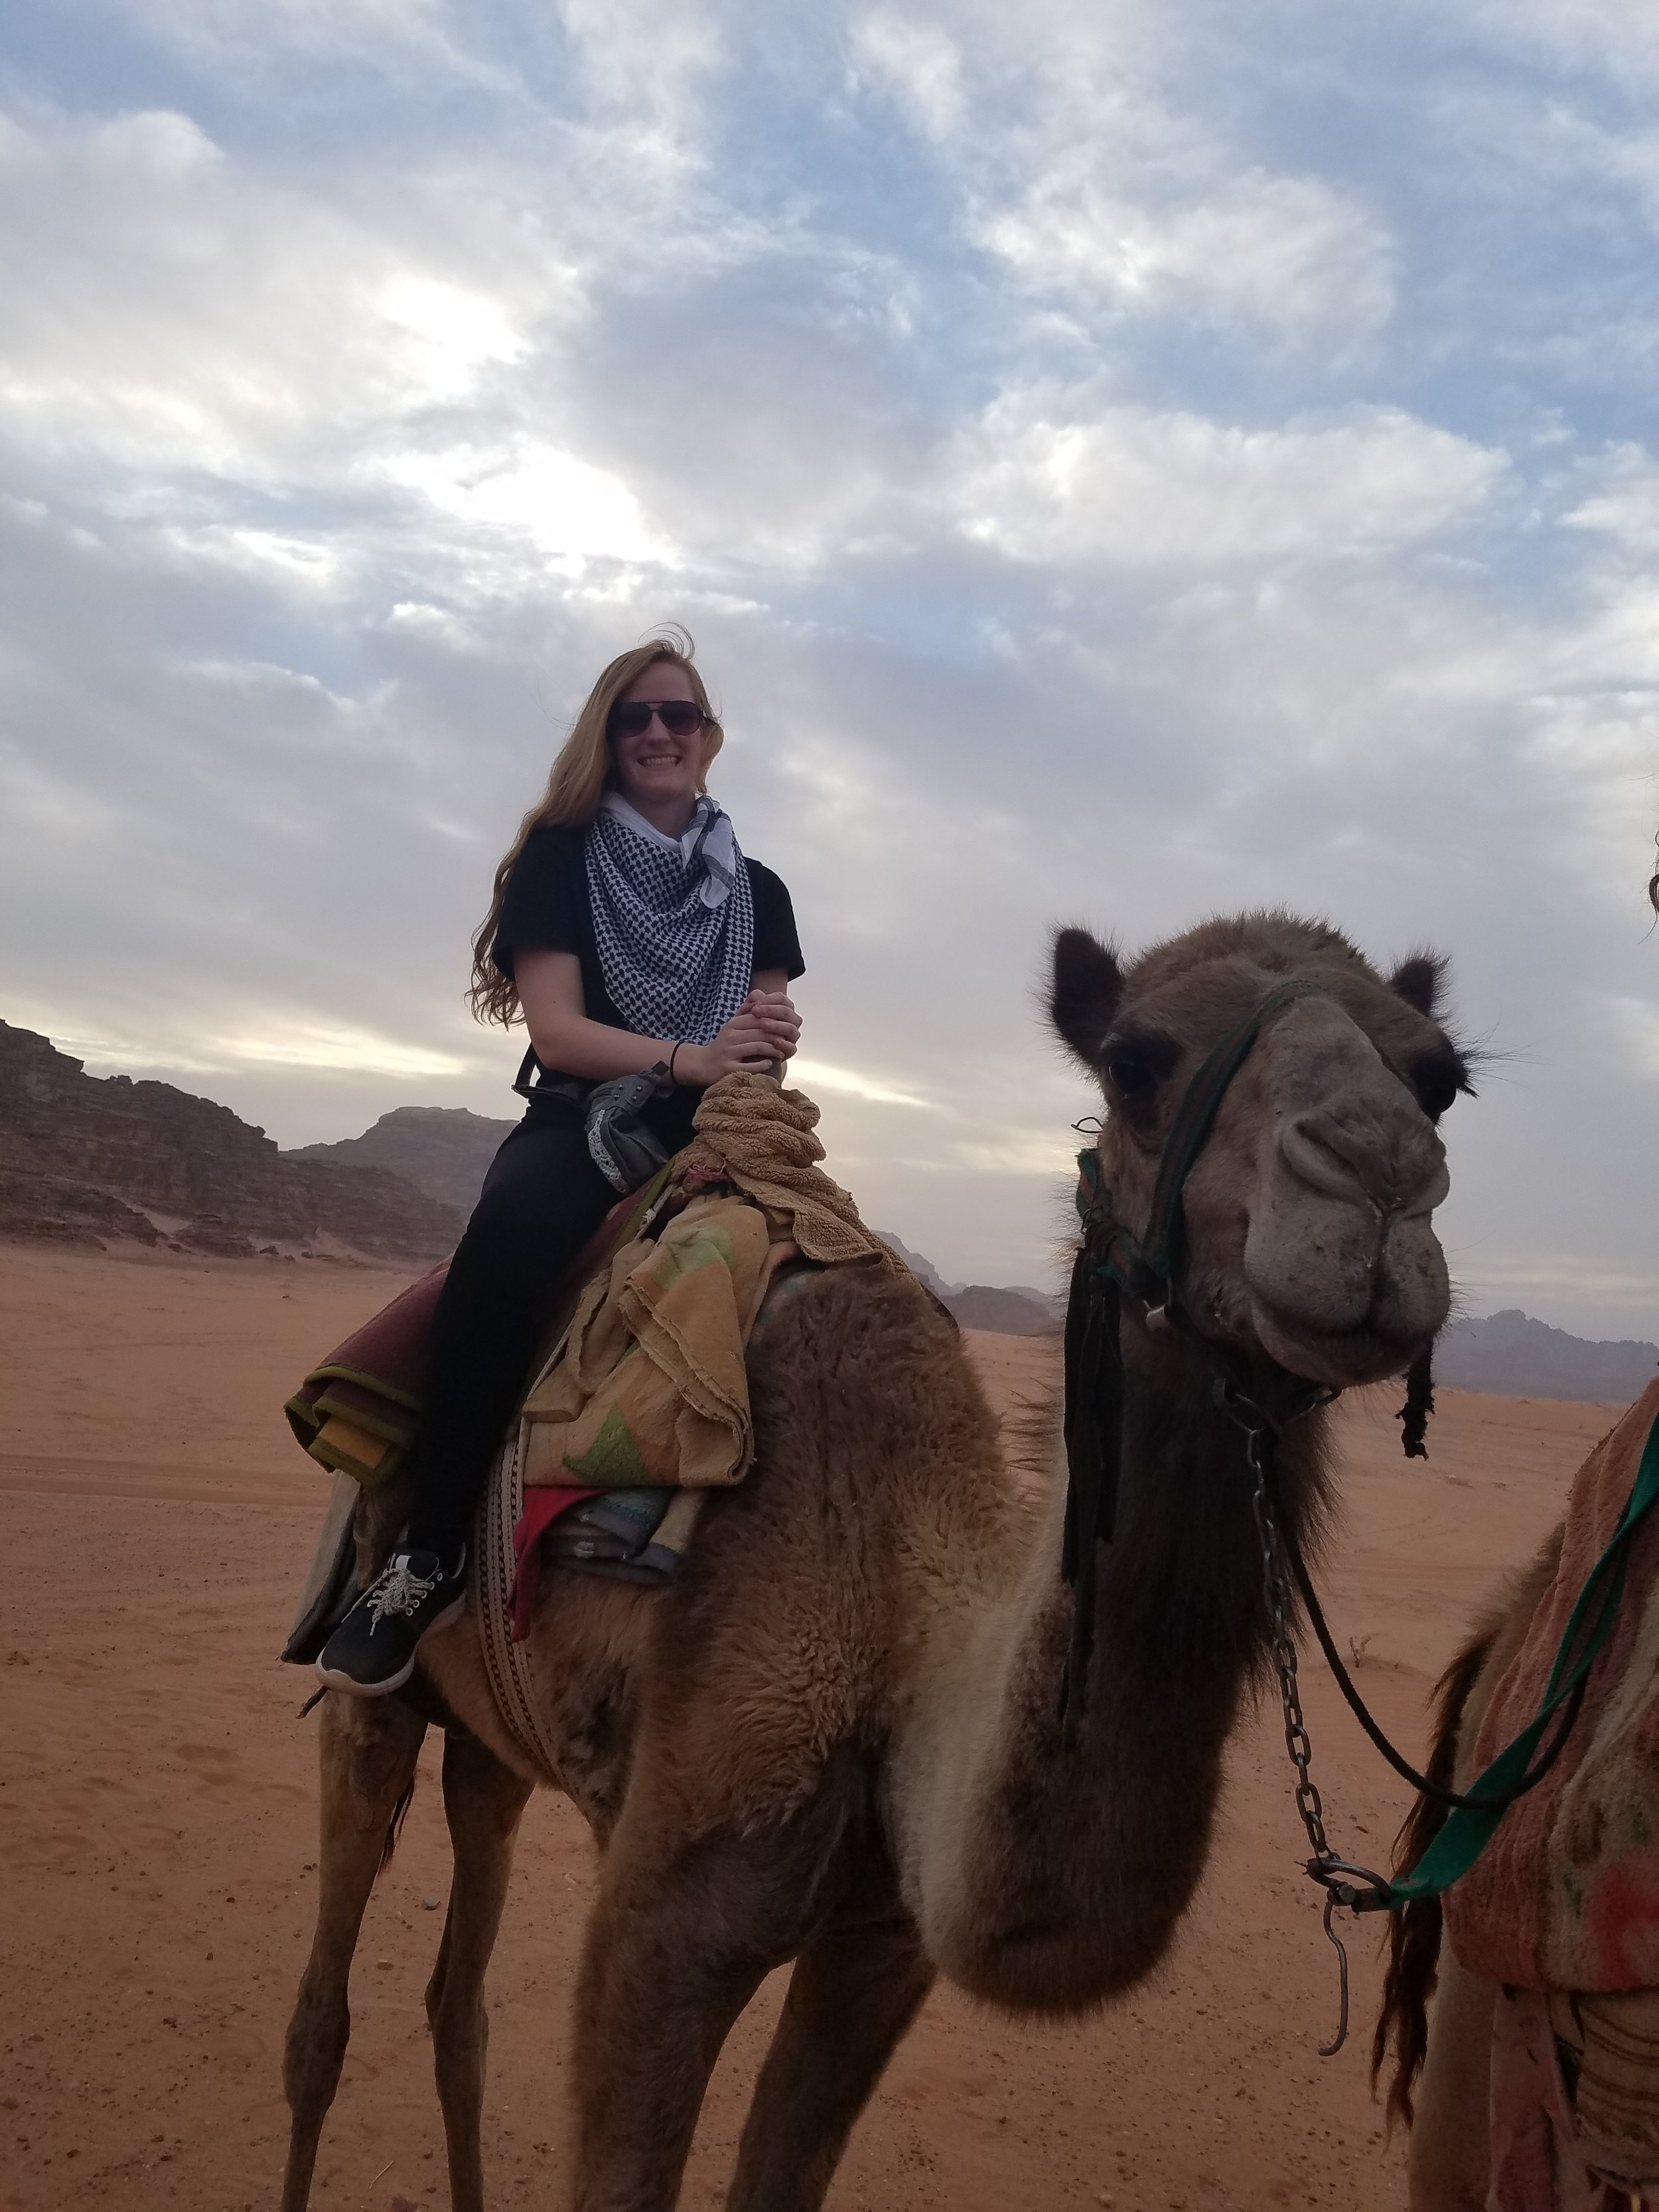 It may be a stereotype, but it is fun to ride at least one camel in Jordan. Photo credit: Zachman, 2018